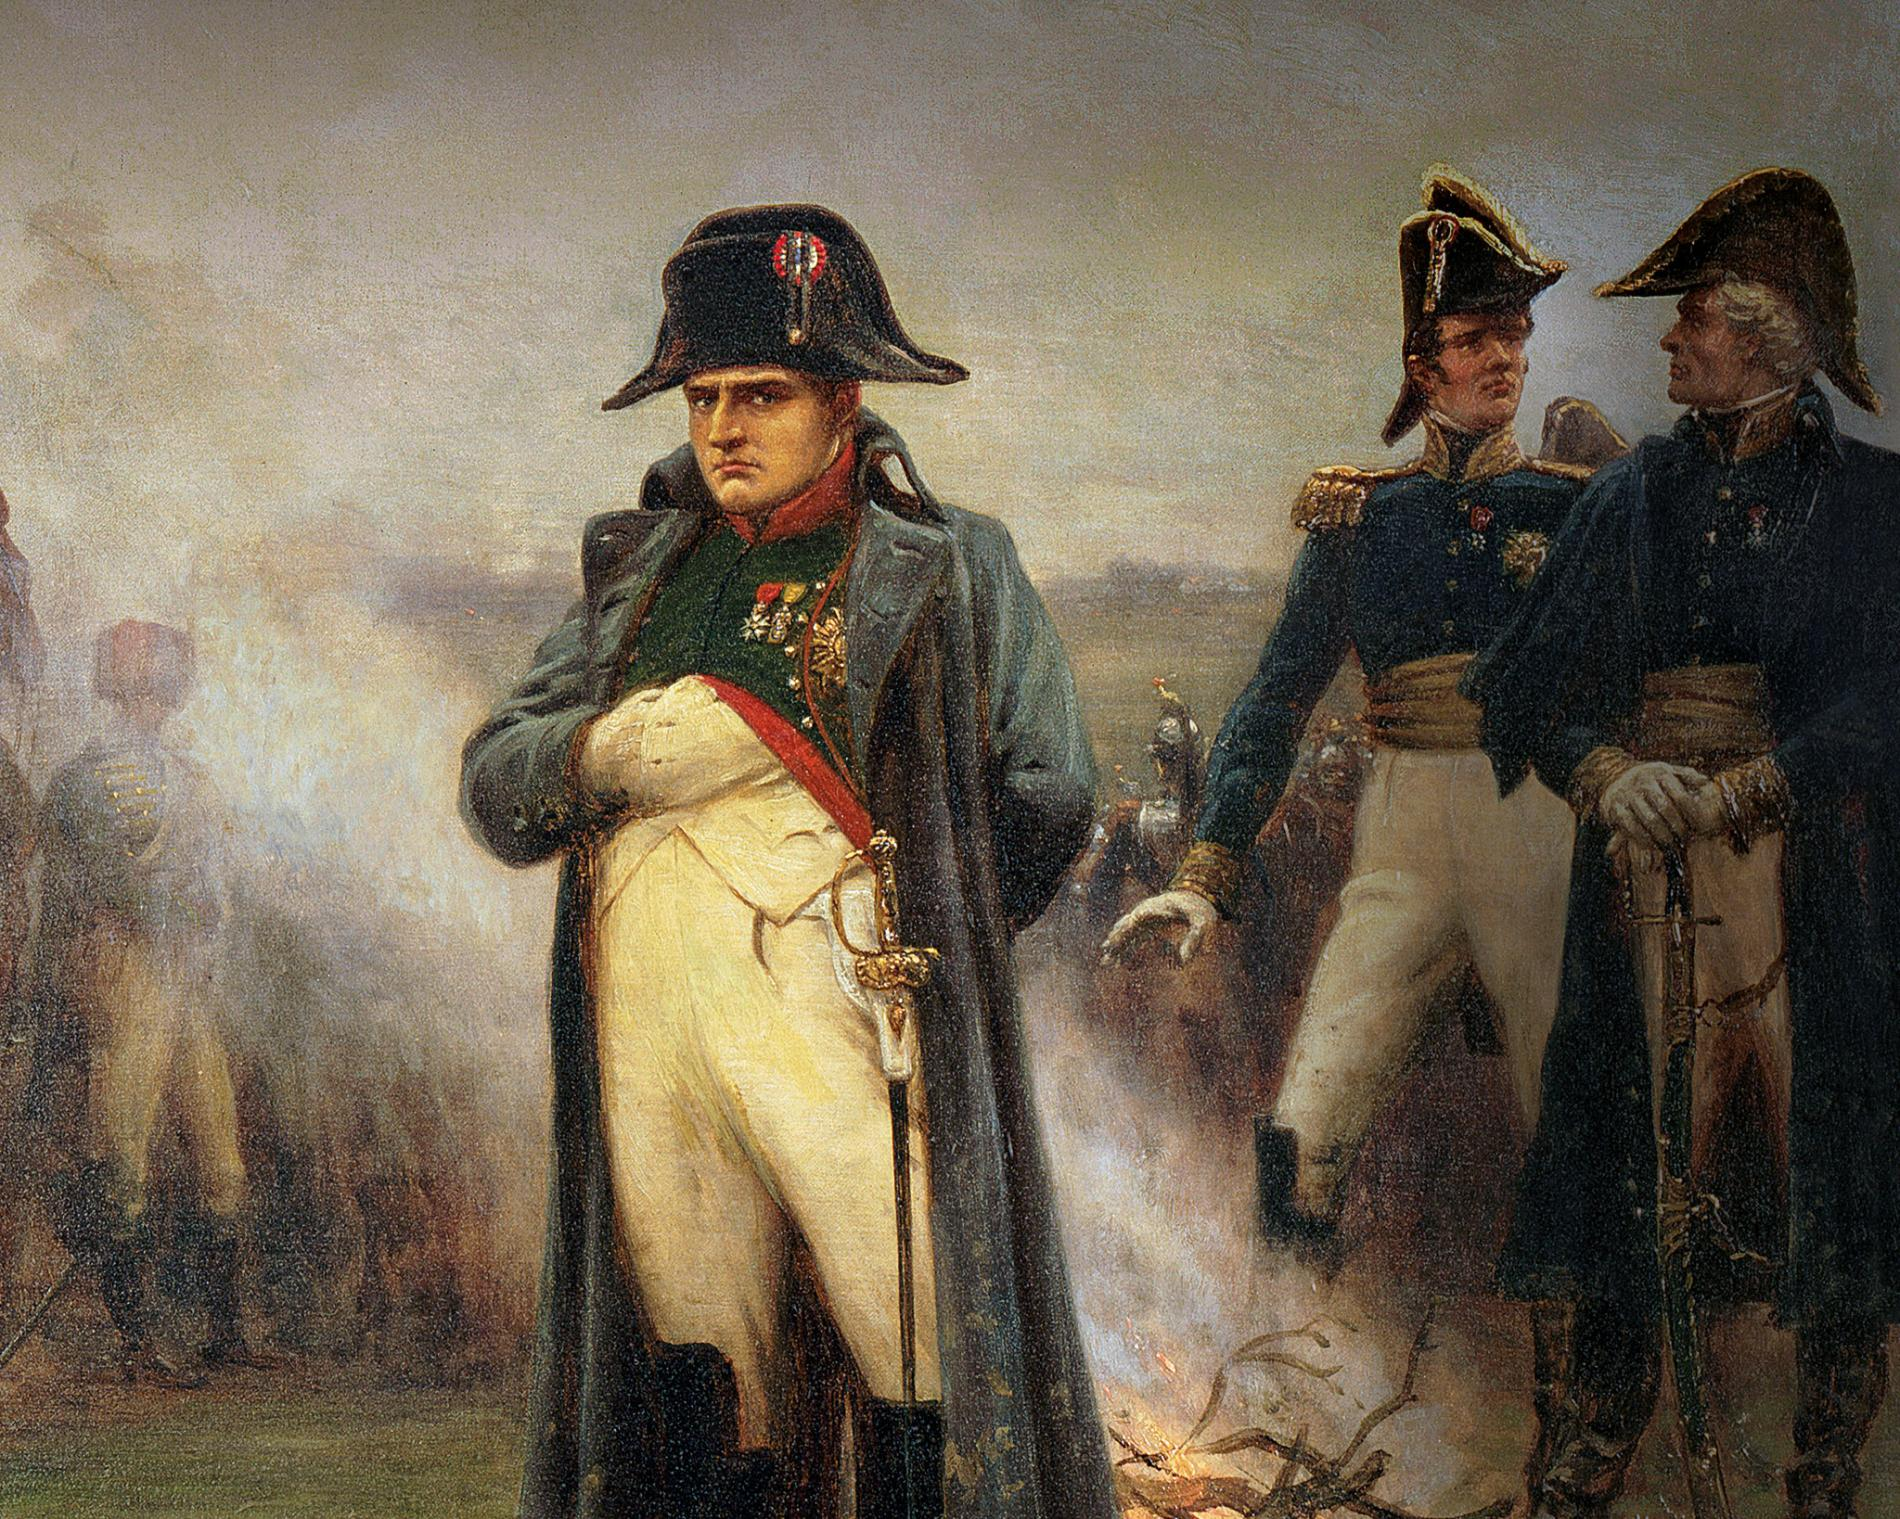 Replicas of Napoleon's letter for sale for a good cause